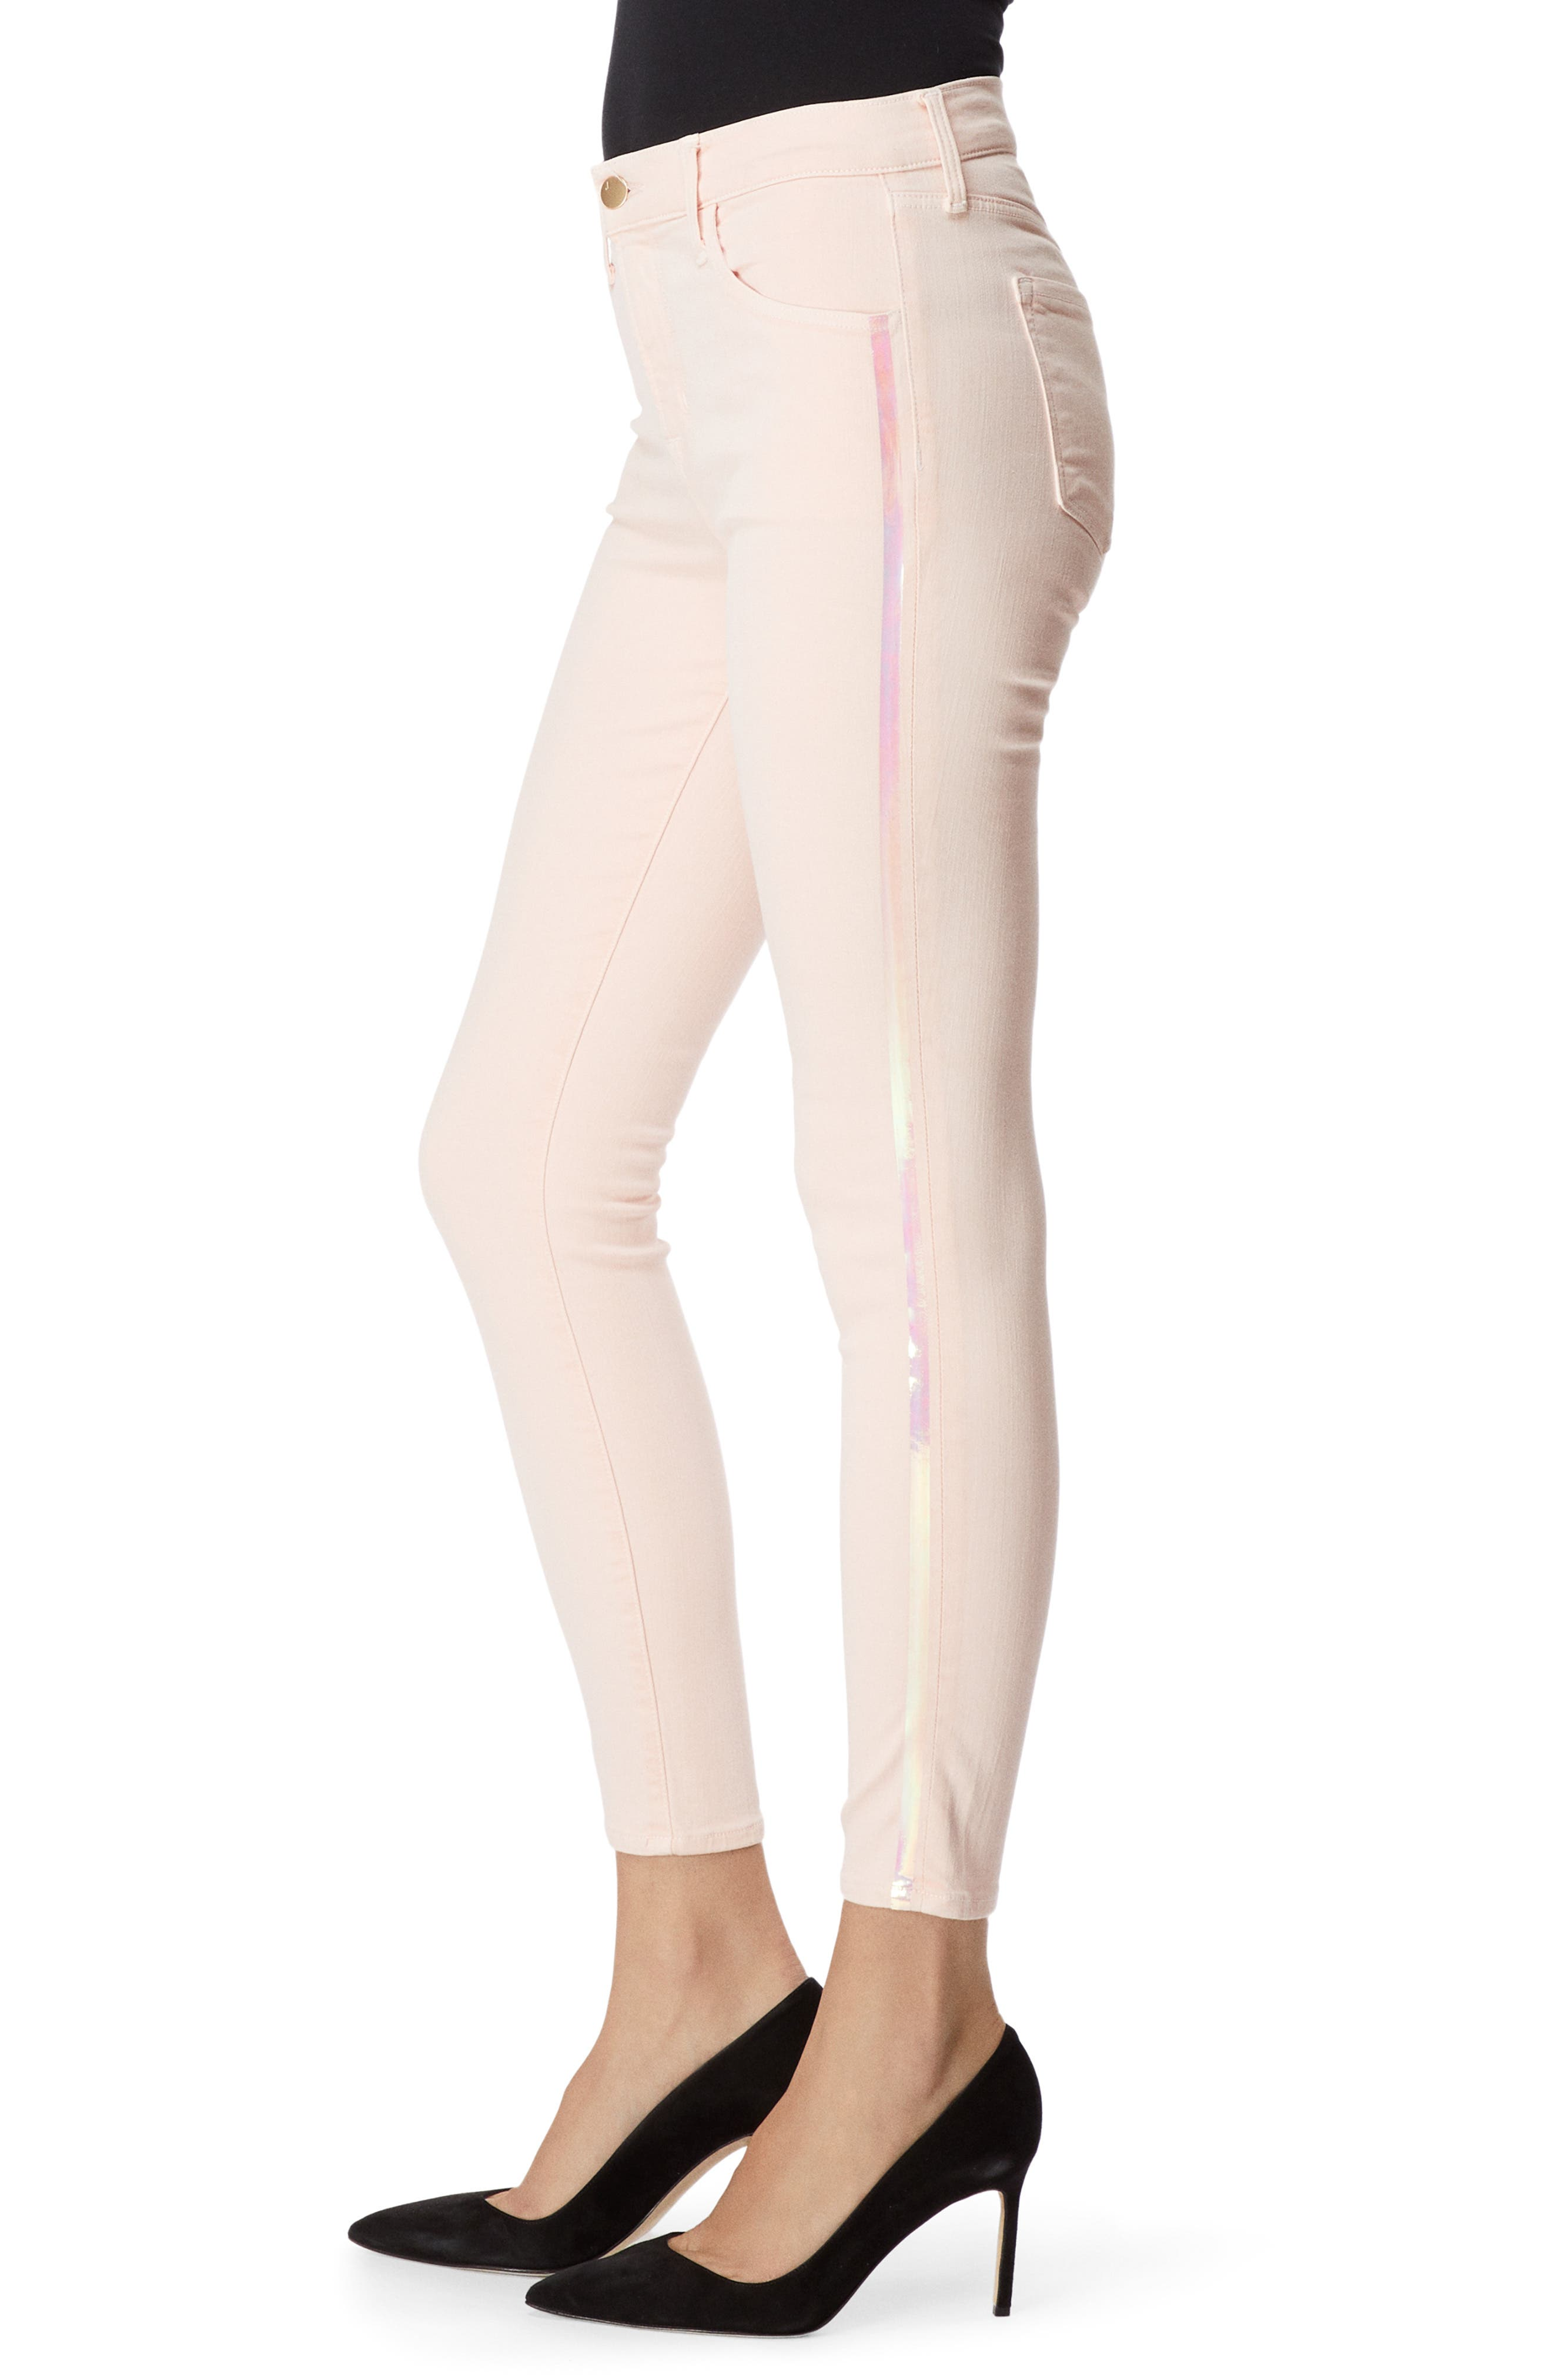 Alana High Waist Ankle Skinny Jeans,                             Alternate thumbnail 3, color,                             DISTRESSED LULLED